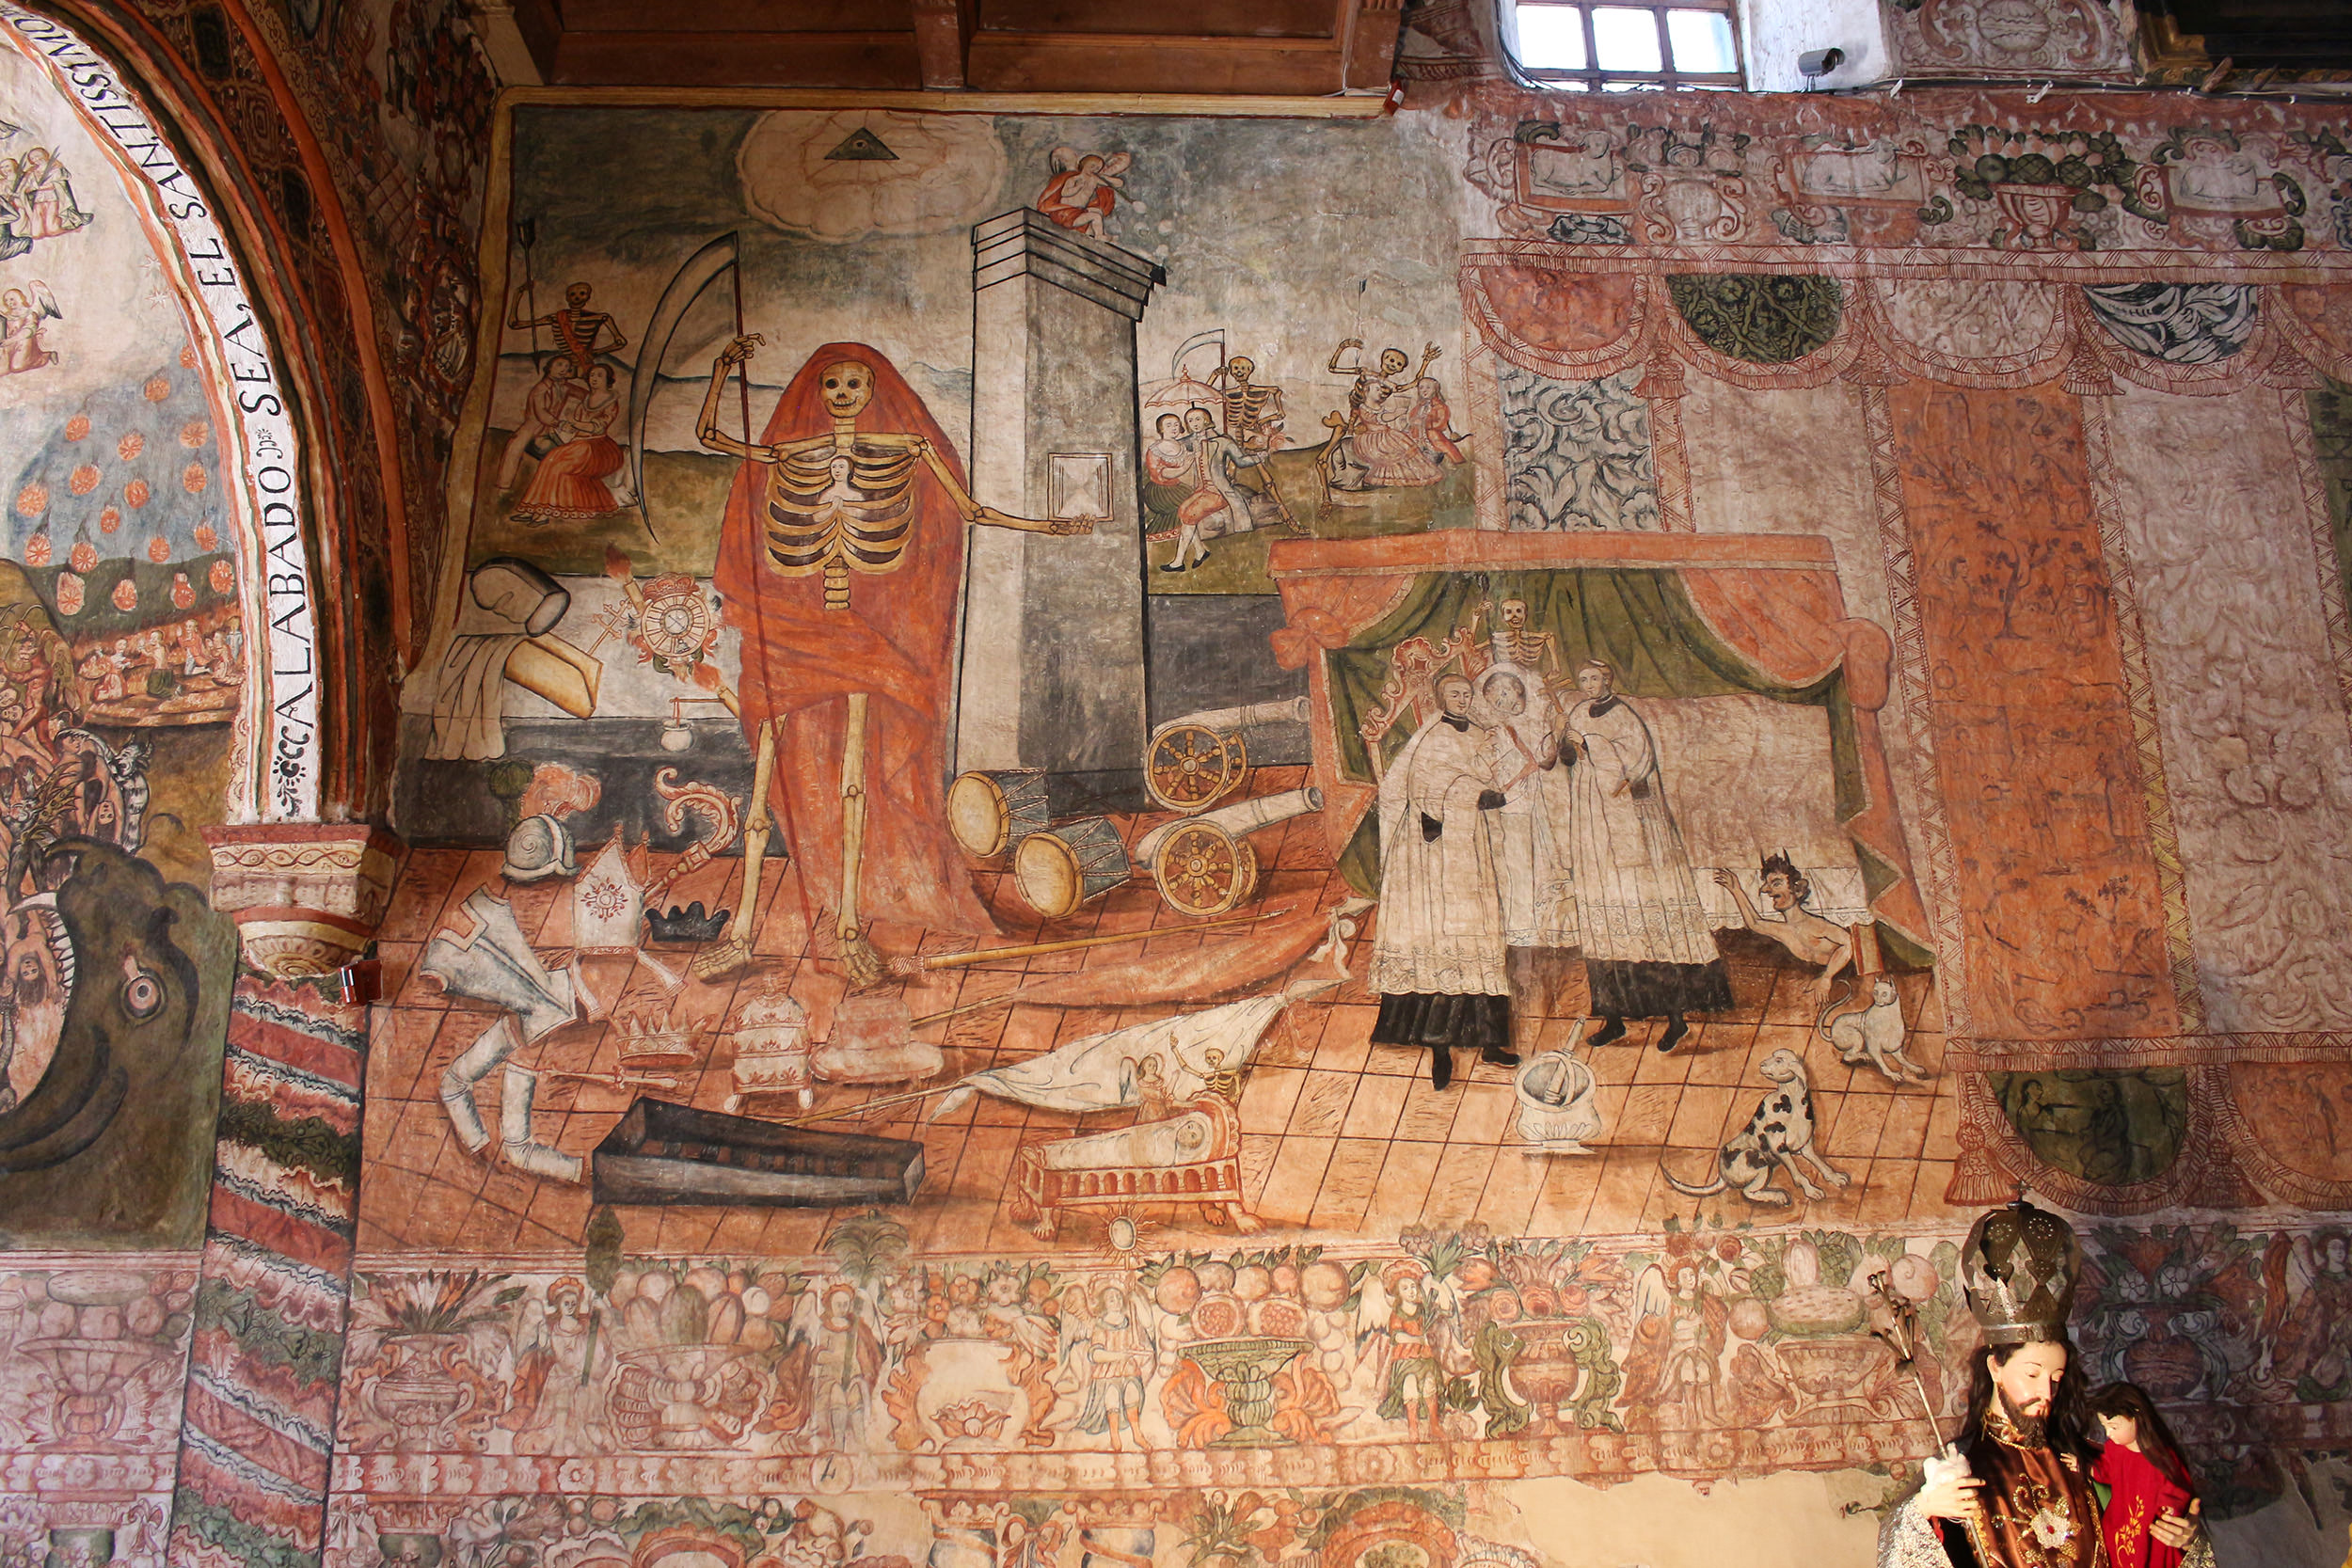 Fig. 26 Allegory of Death mural by Tadeo Escalante, Church of Huaro, 1802. Photo by author. Note the similar representation of a praying woman nestled within the skeleton's ribs as we see in the Celda Salamanca.